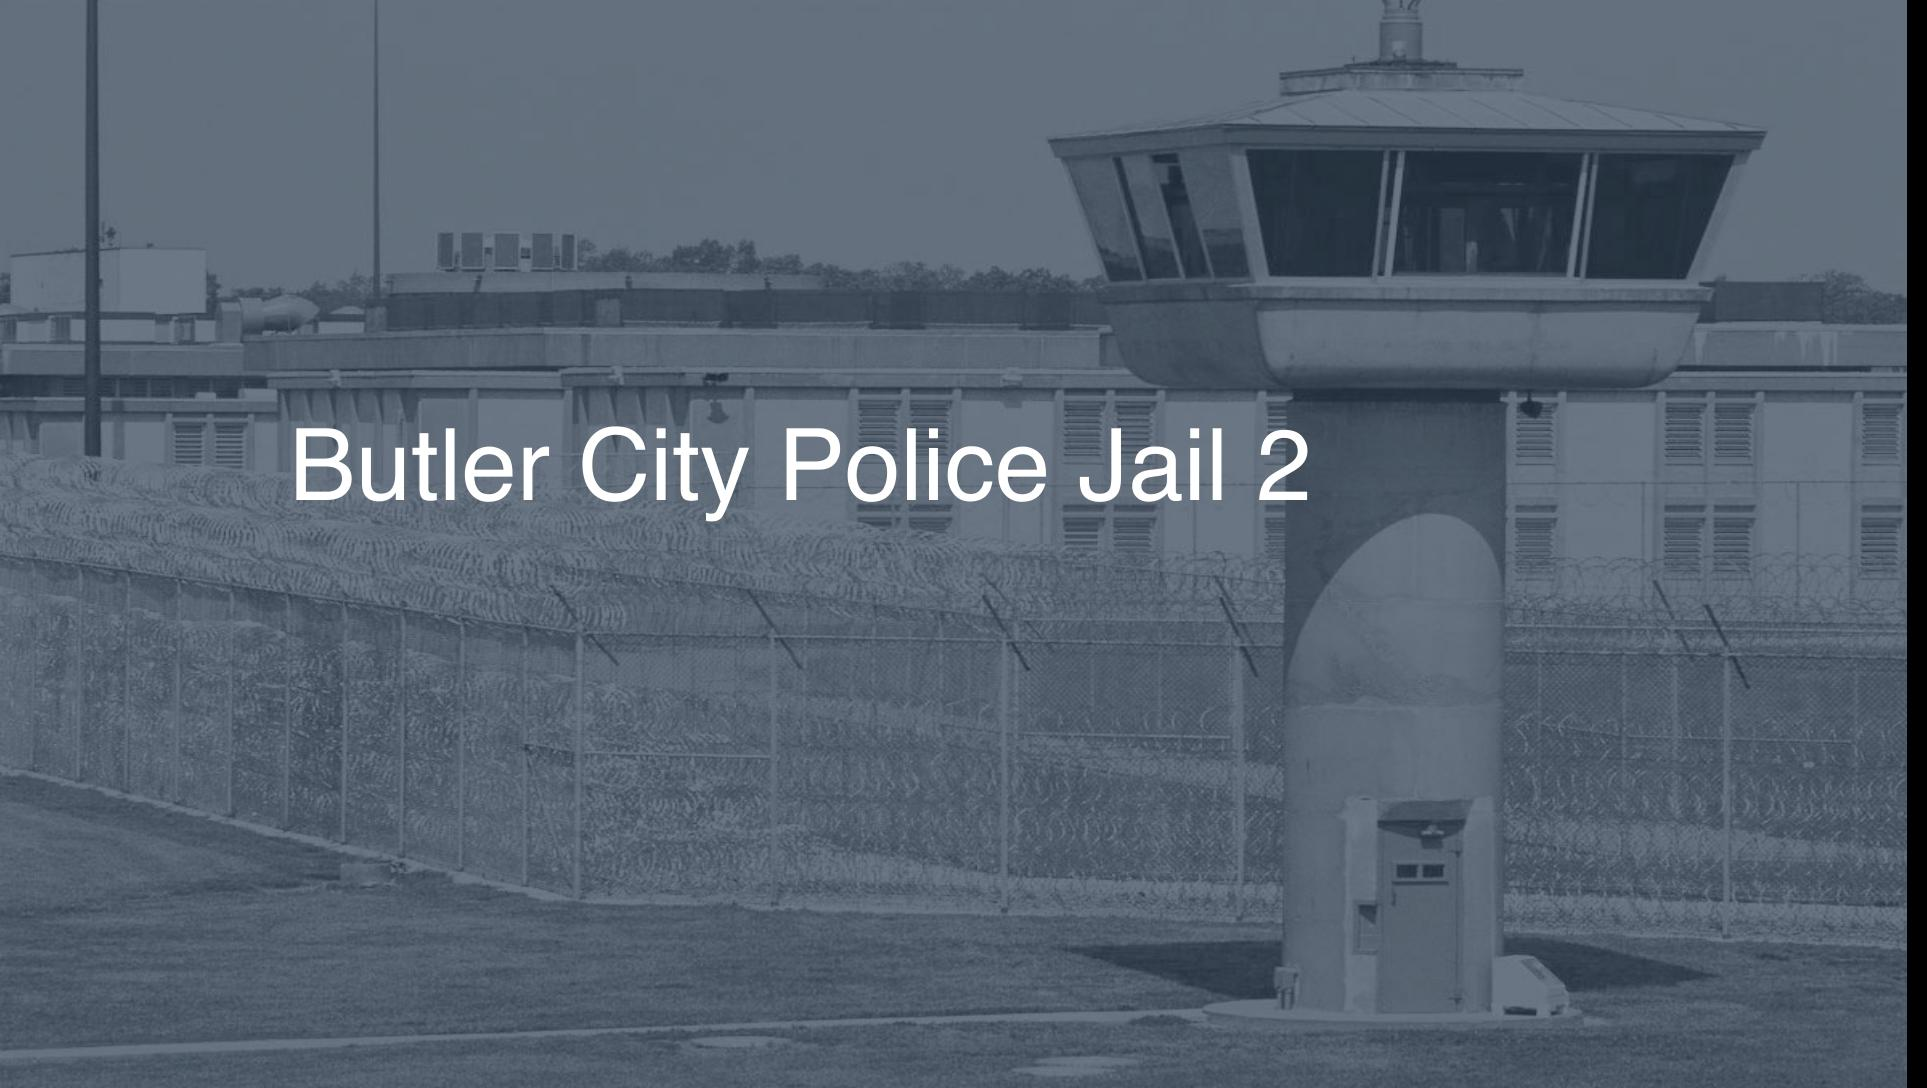 Butler City Police Jail Inmate Search, Lookup & Services - Pigeonly